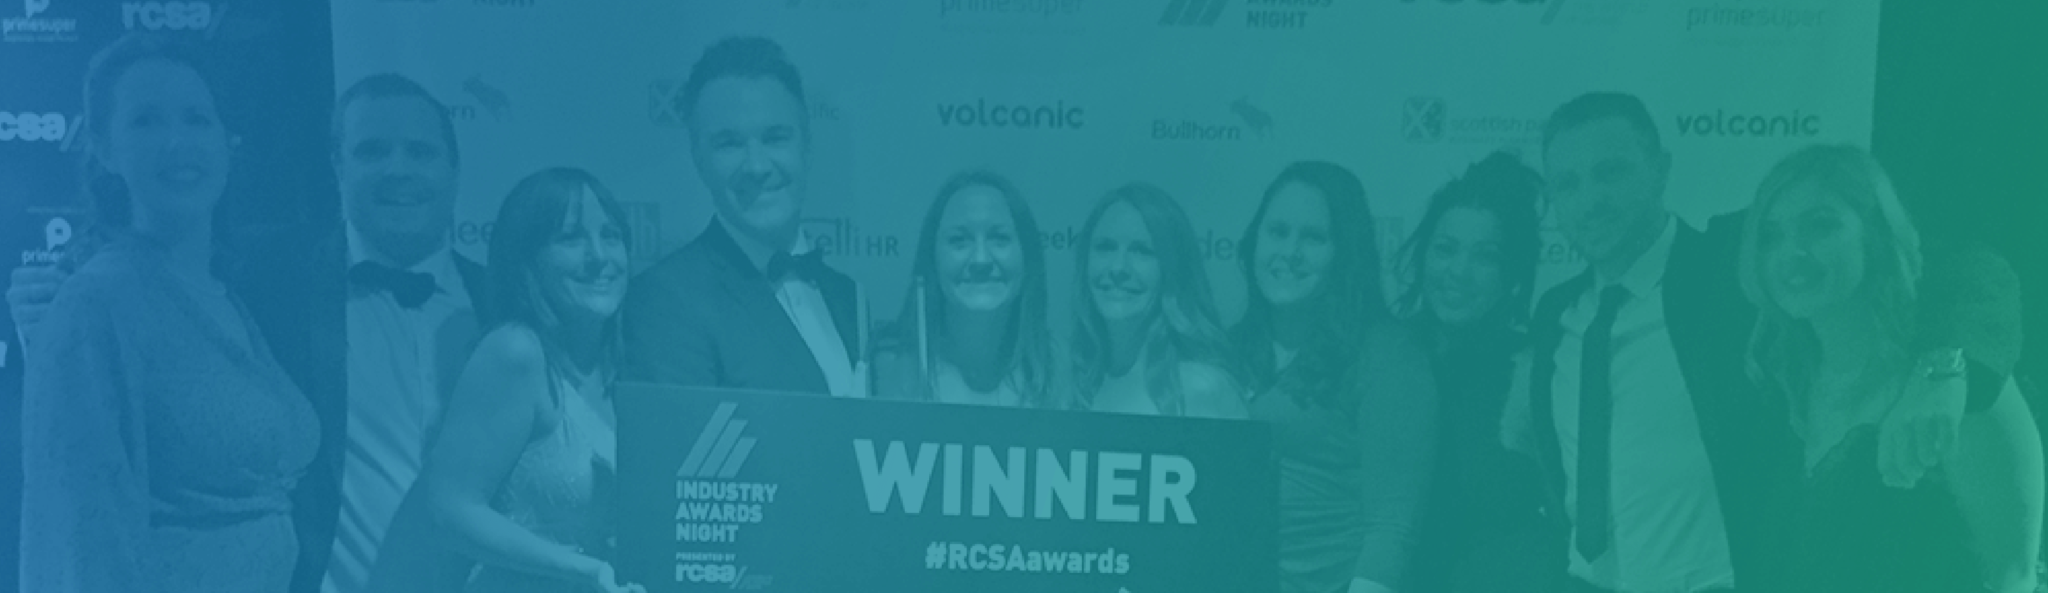 M&T wins RCSA Award for Client Service